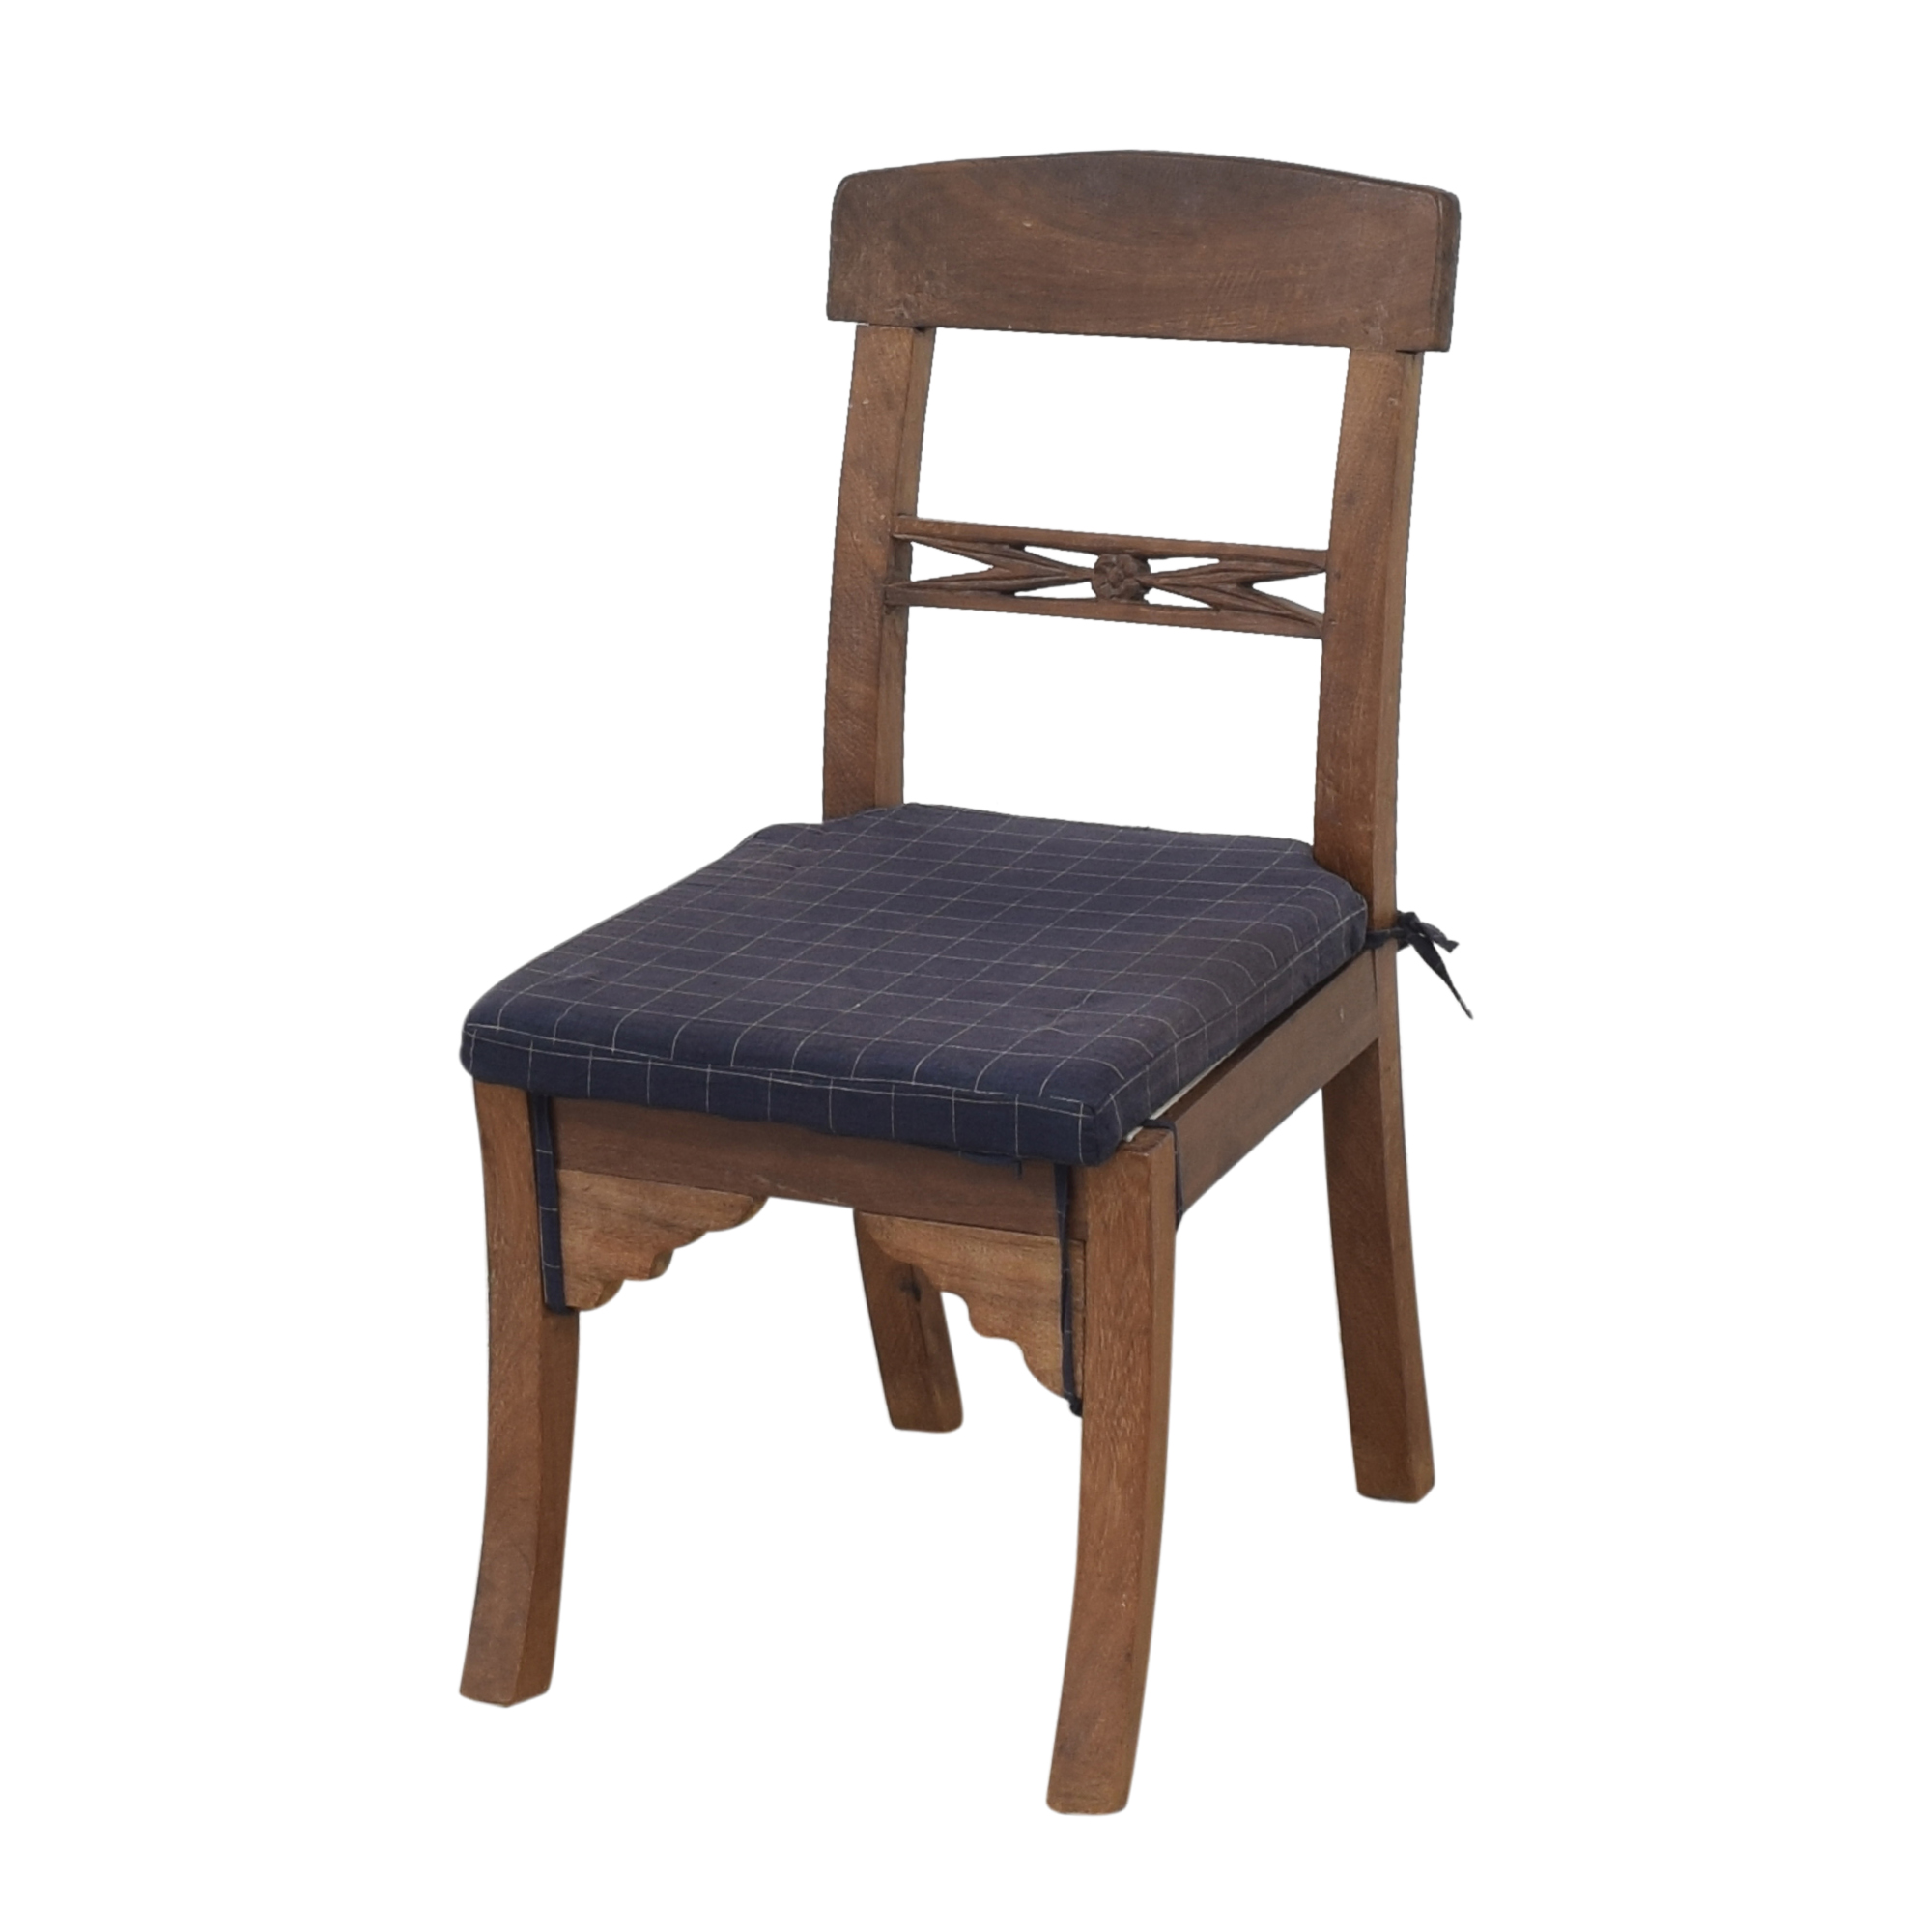 Custom Dining Chairs / Dining Chairs